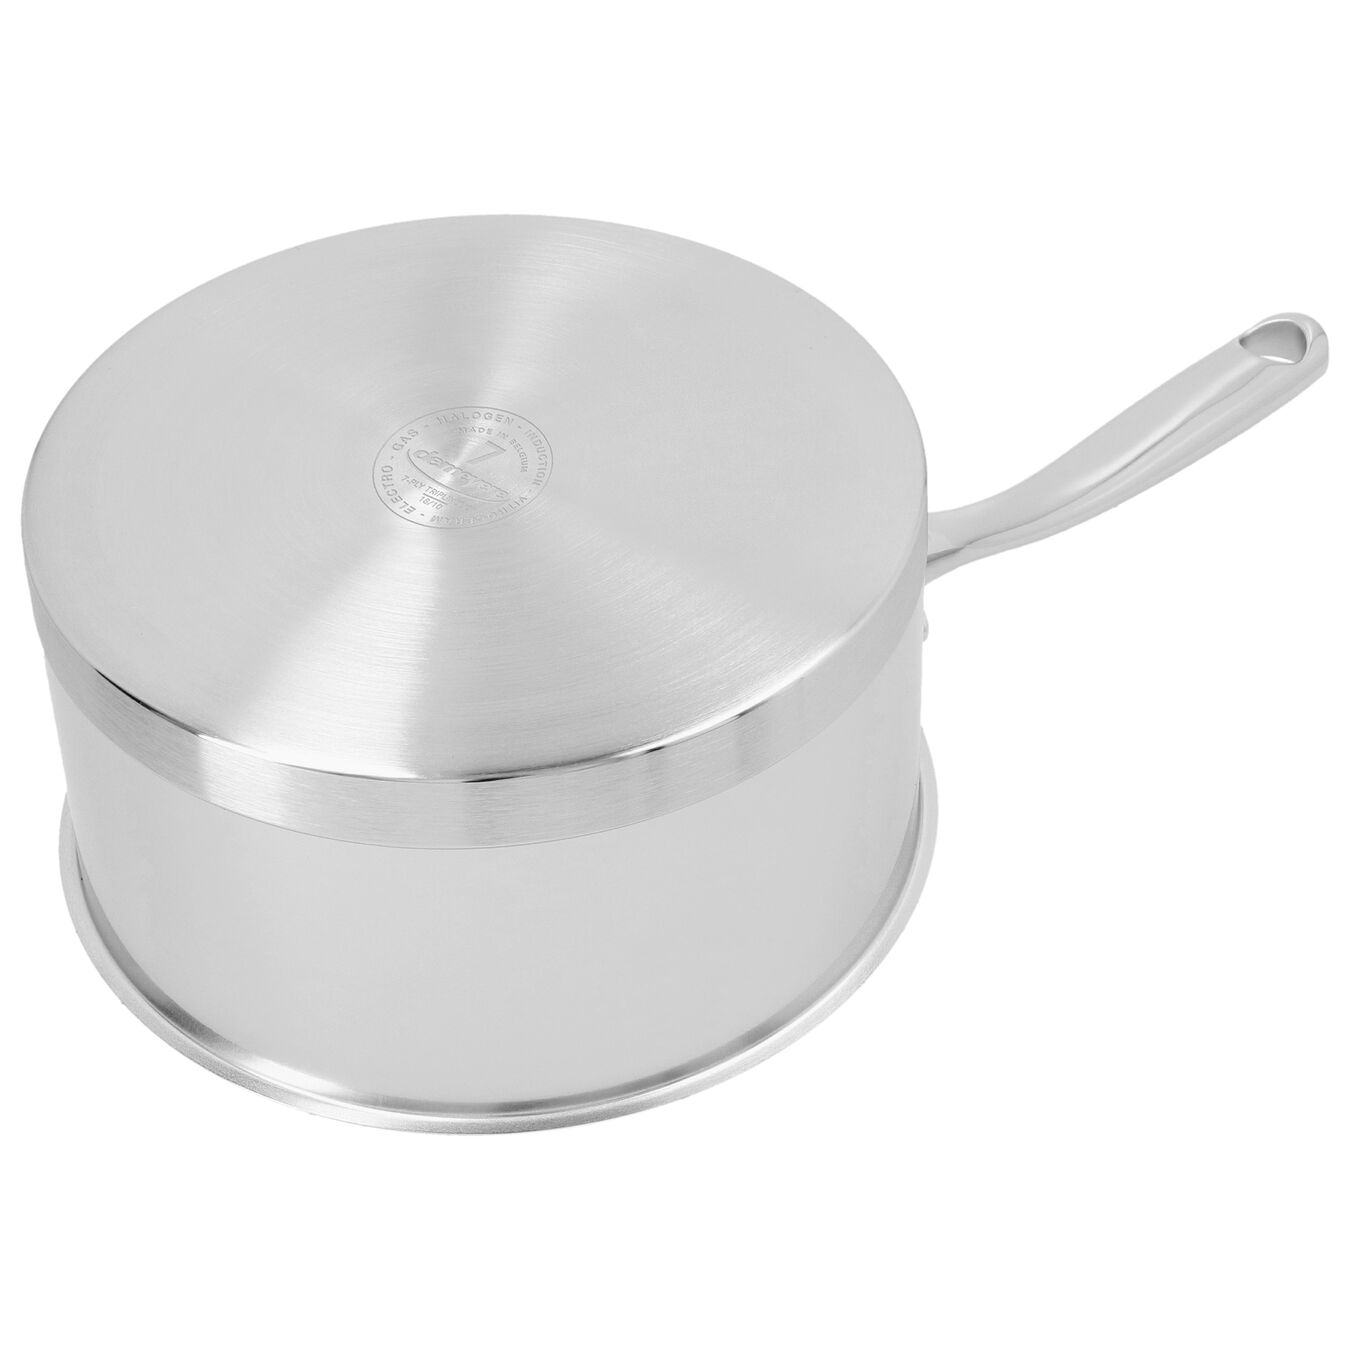 2.25 qt Sauce pan with lid, 18/10 Stainless Steel ,,large 2